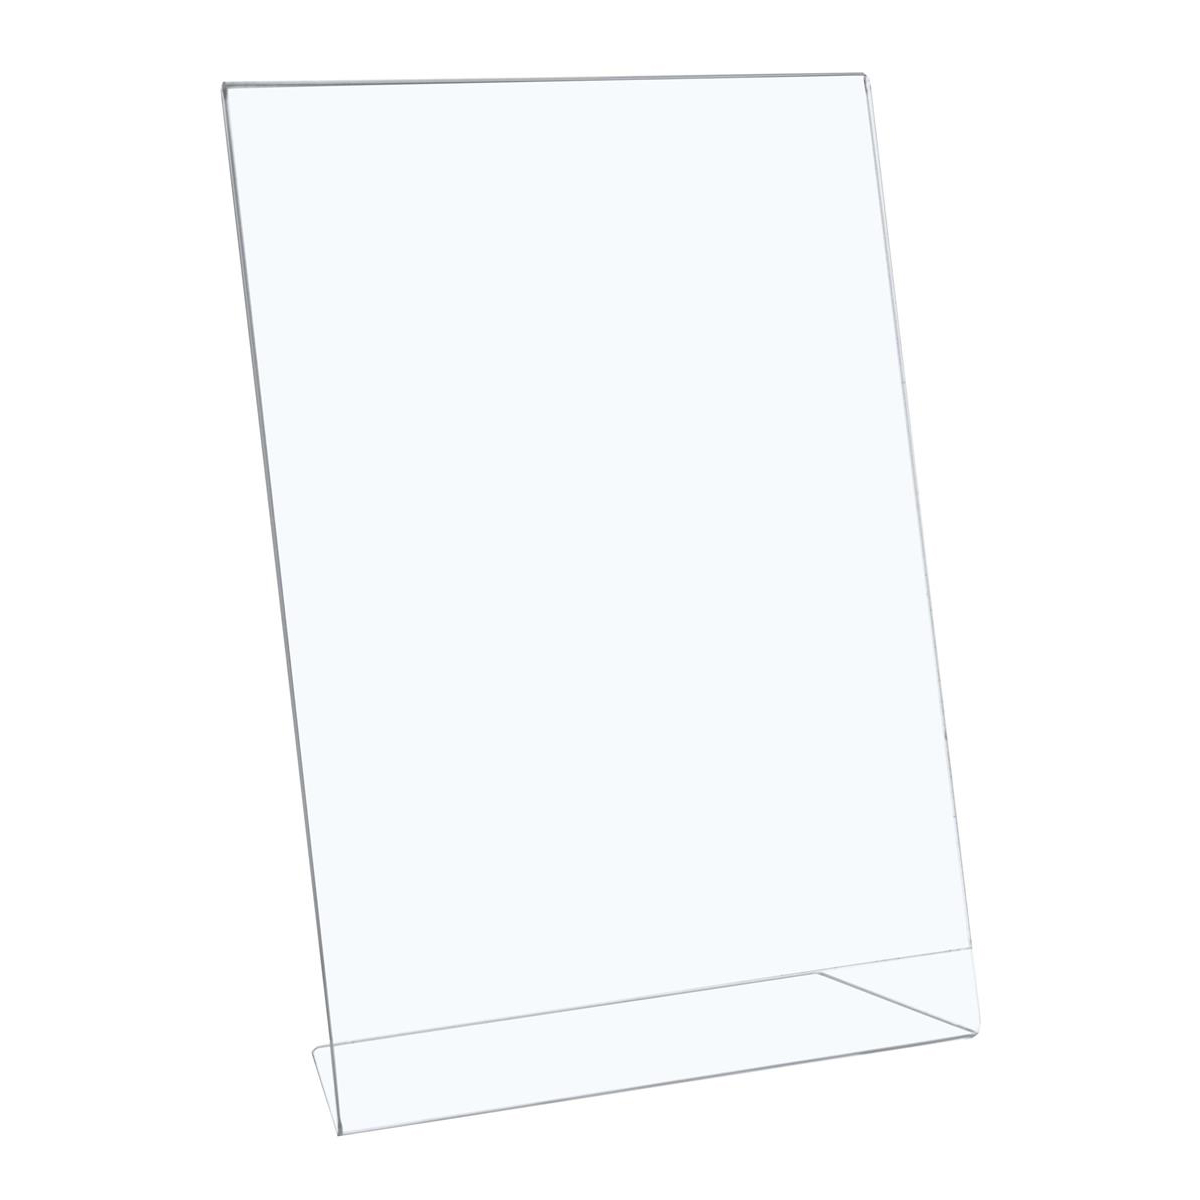 Sign holders or stands 5 Star Office Sign Holder Portrait Slanted A4 Clear